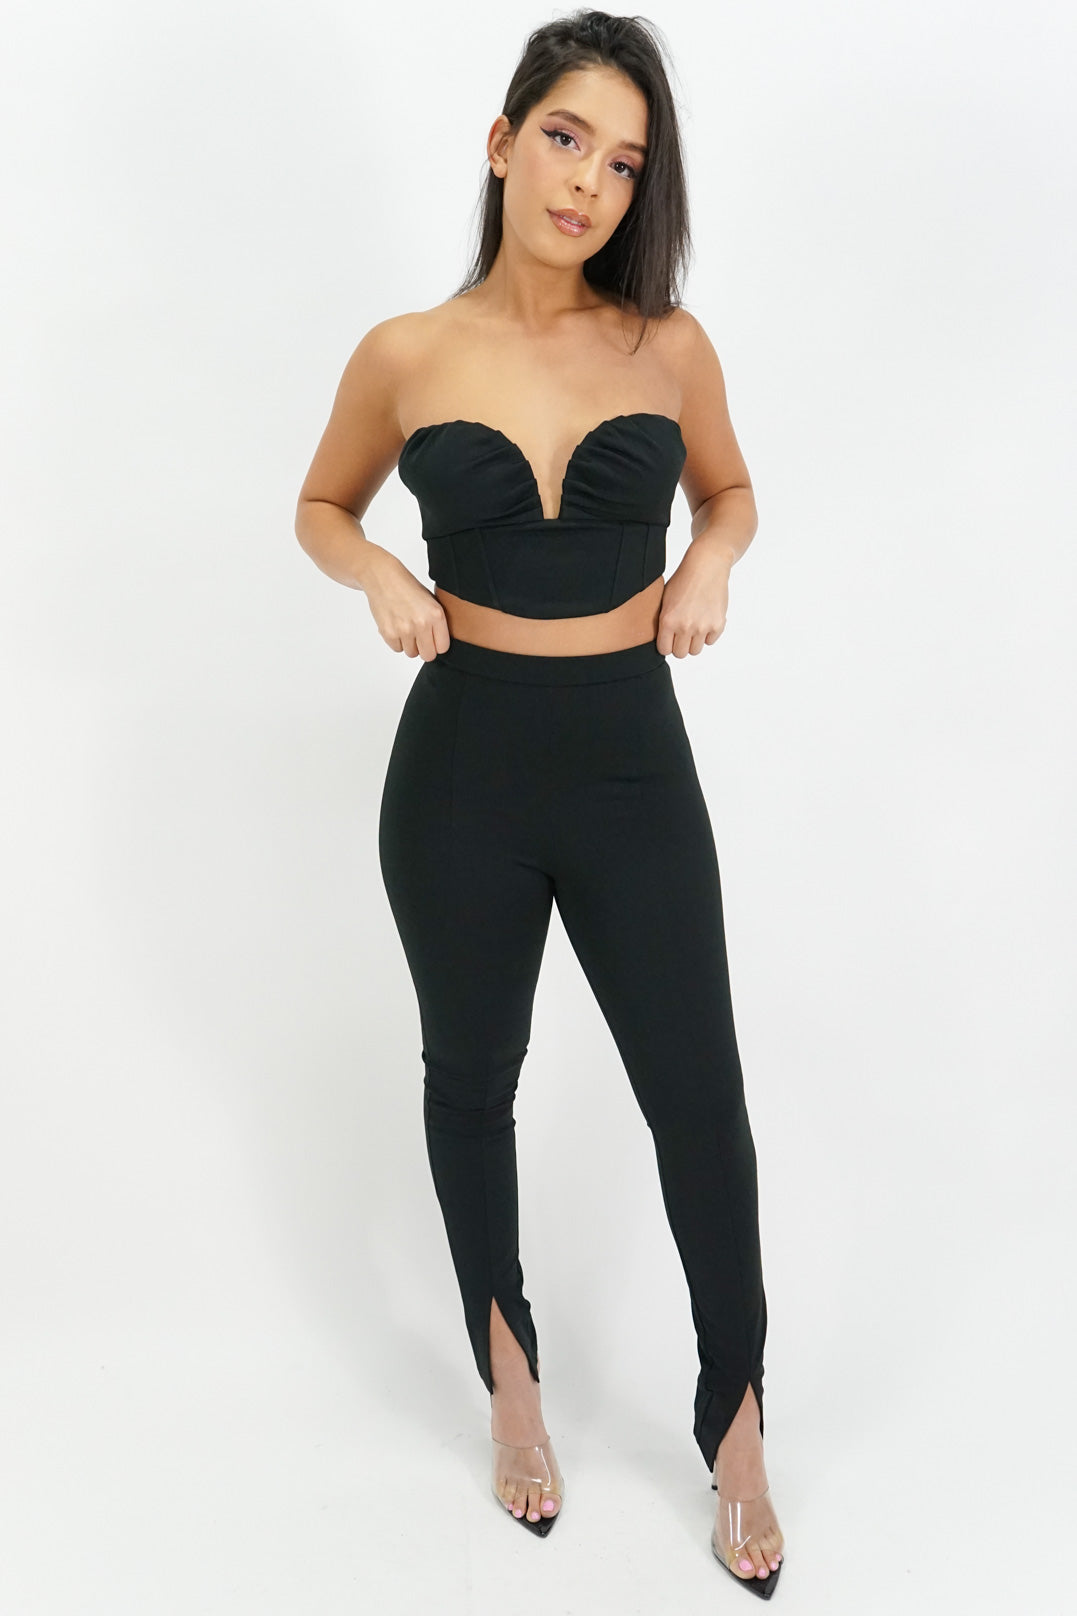 Love Me Lots Strapless Top + Legging Set